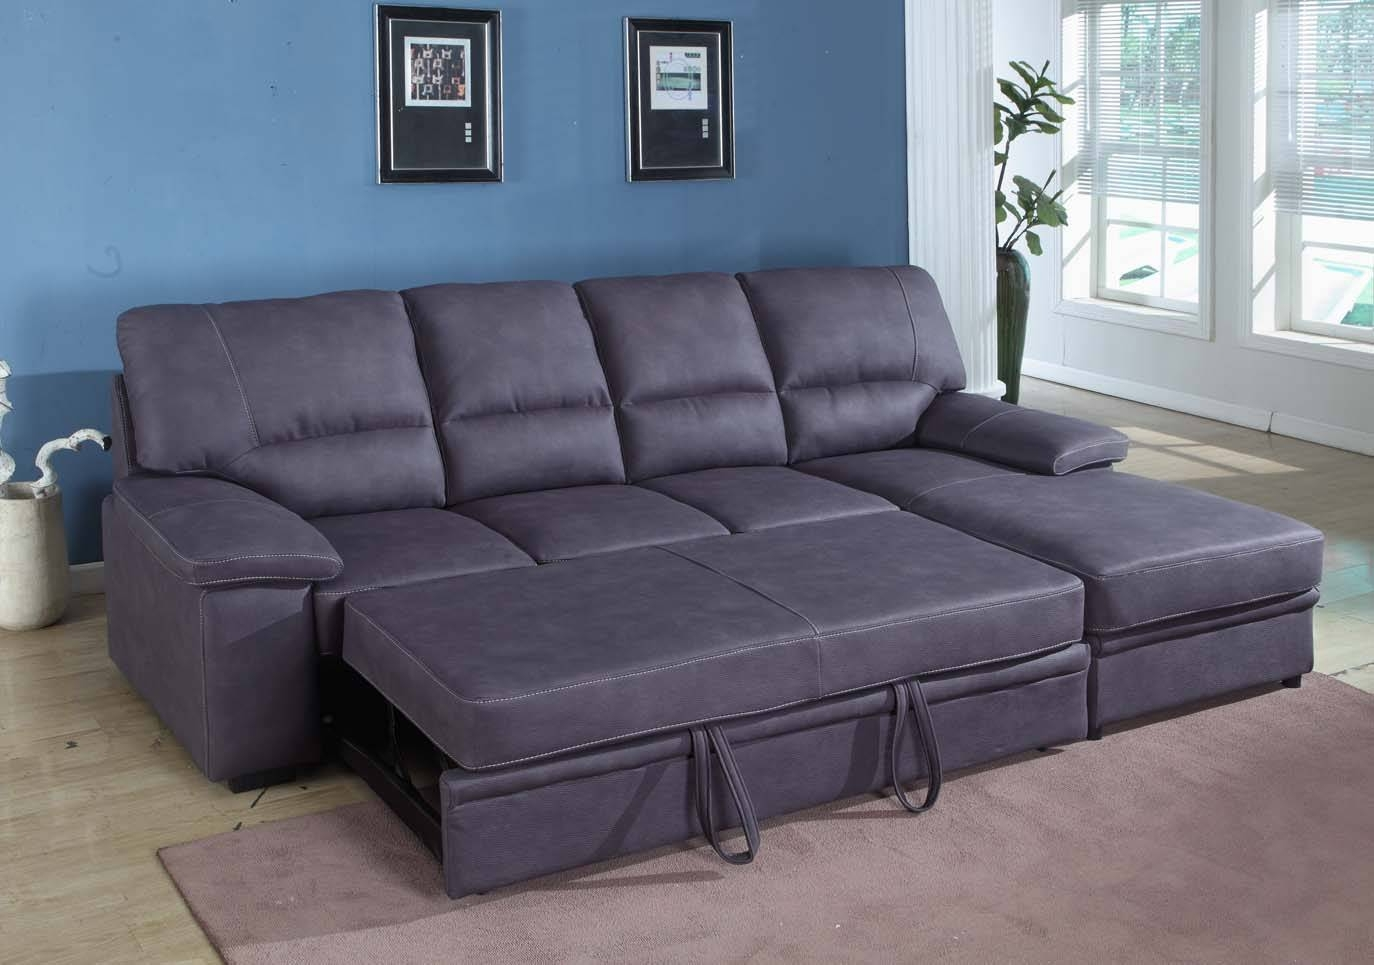 Top Gray Sectional Sofa Ideas : How To Design A Room With A Gray regarding Sectional Sofa Ideas (Image 30 of 30)